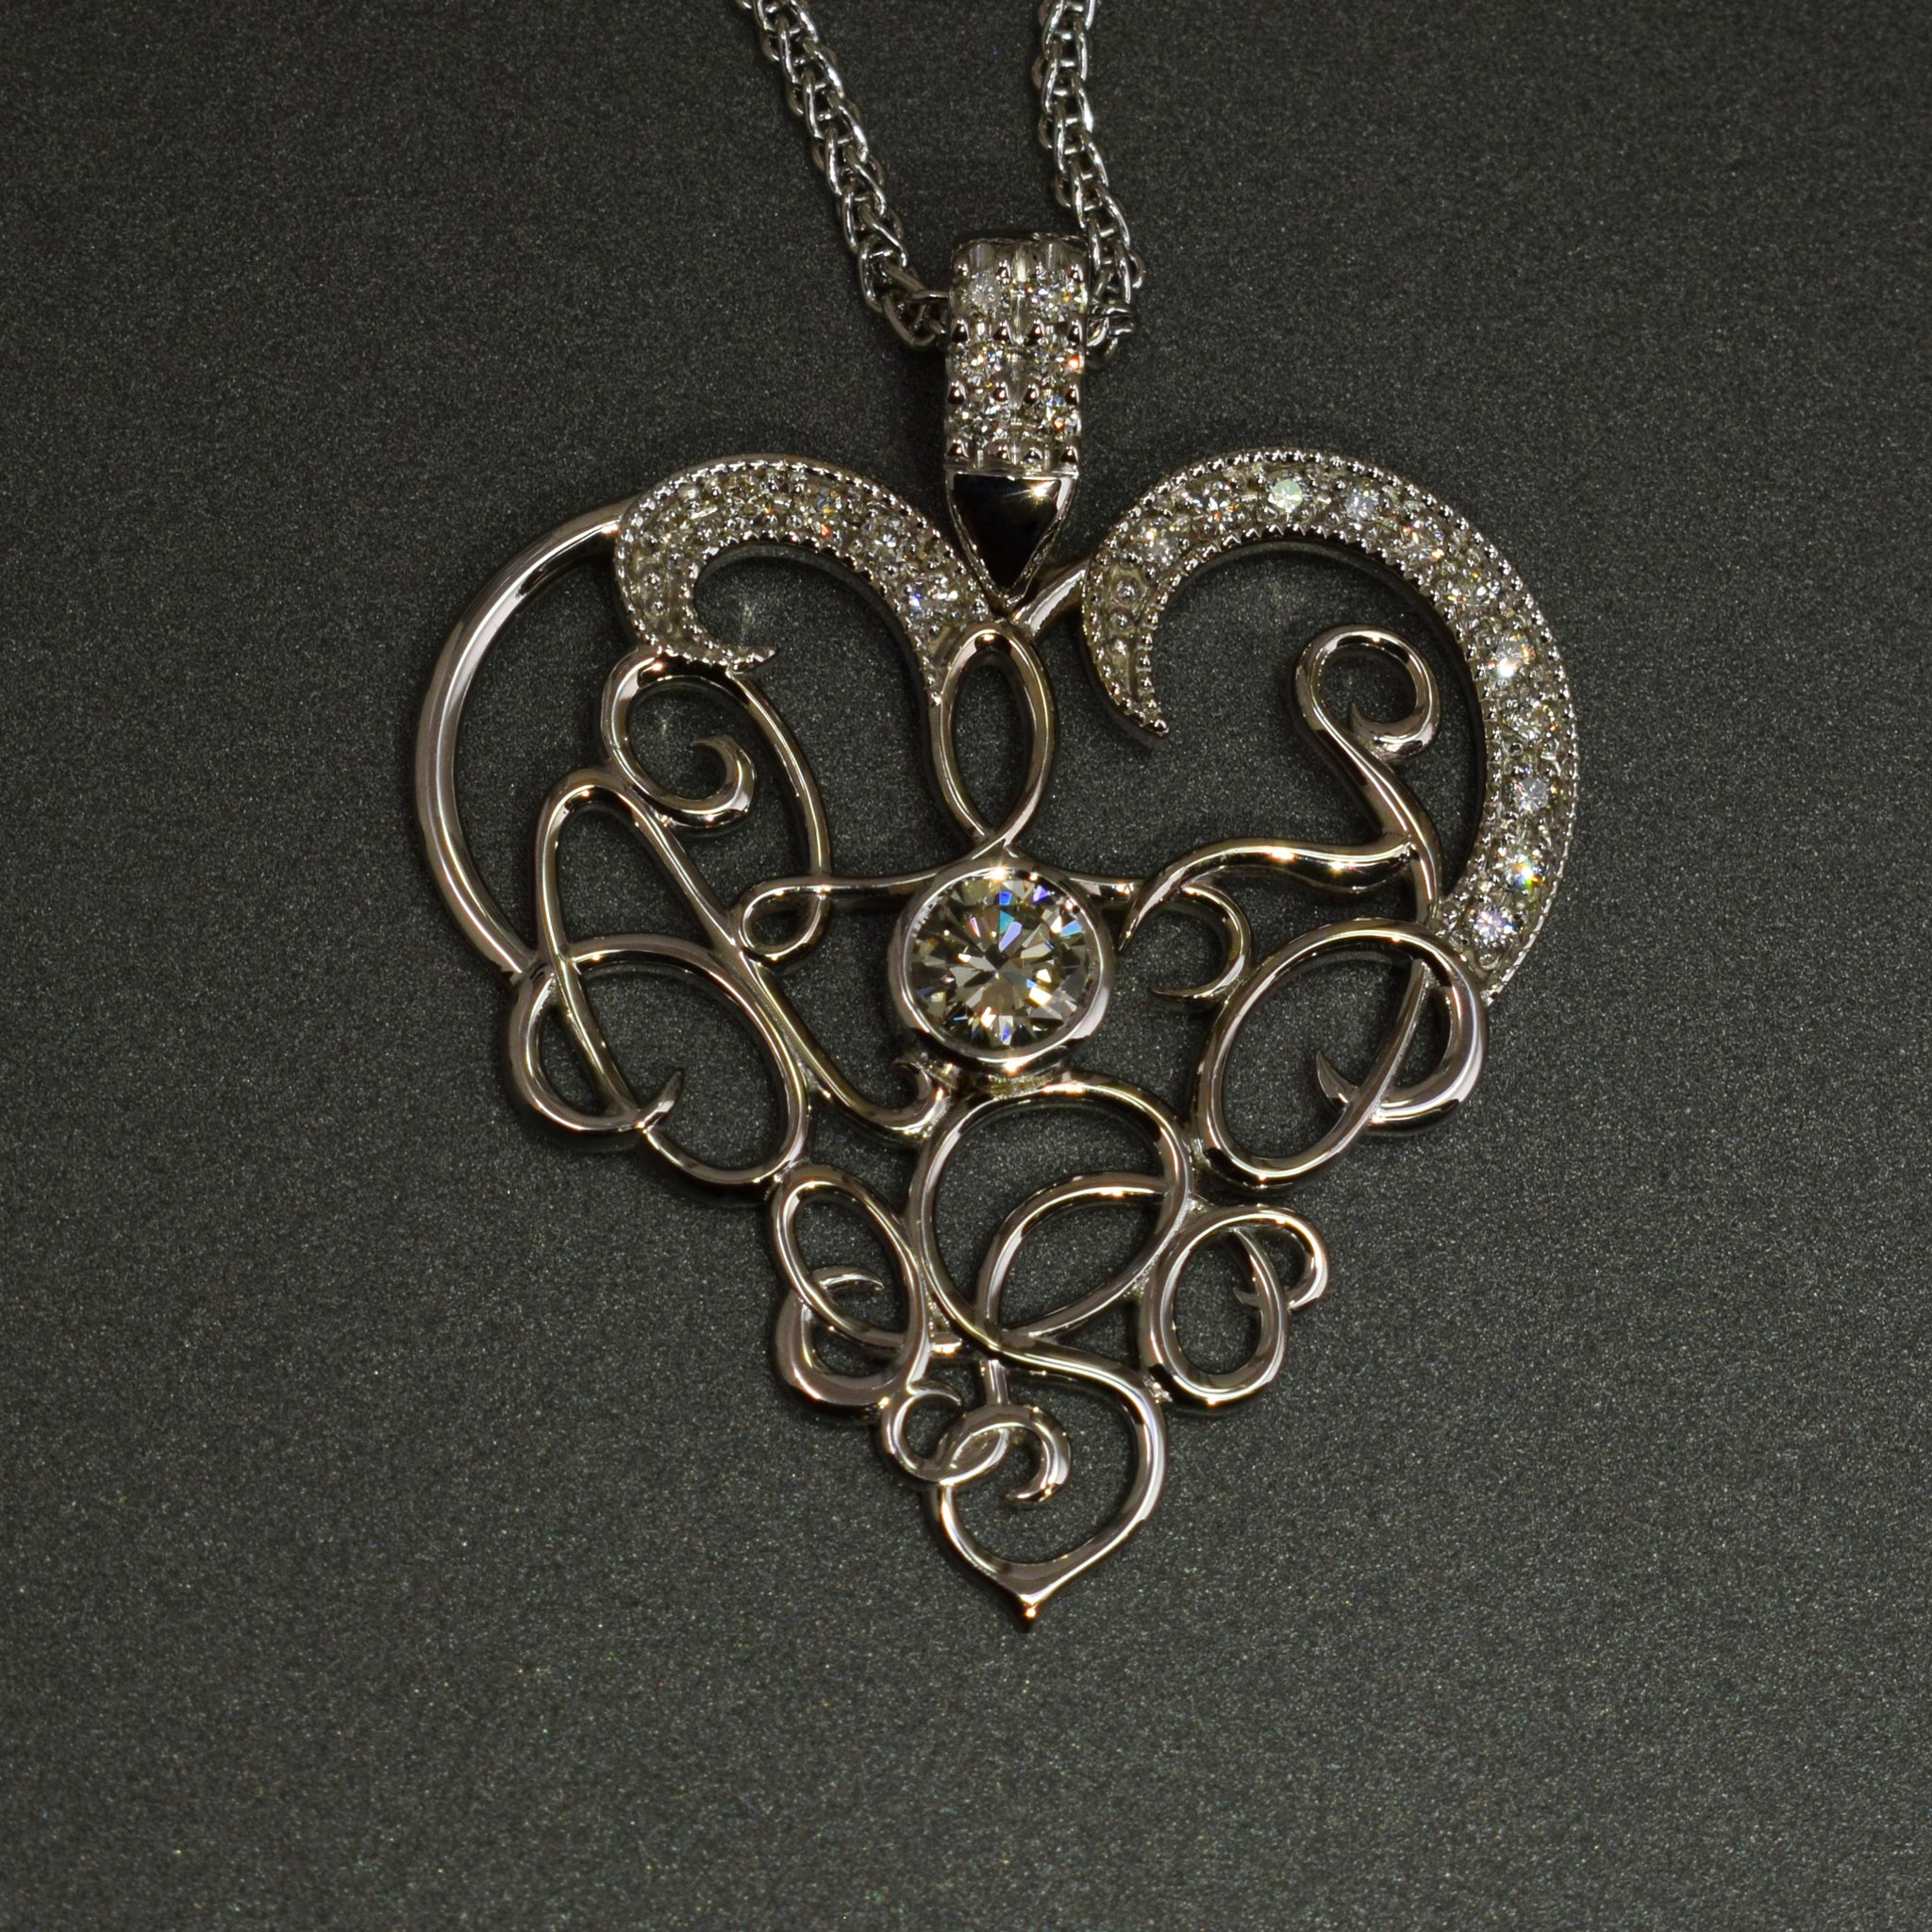 Calligraphy heart shaped pendant with diamonds in white gold